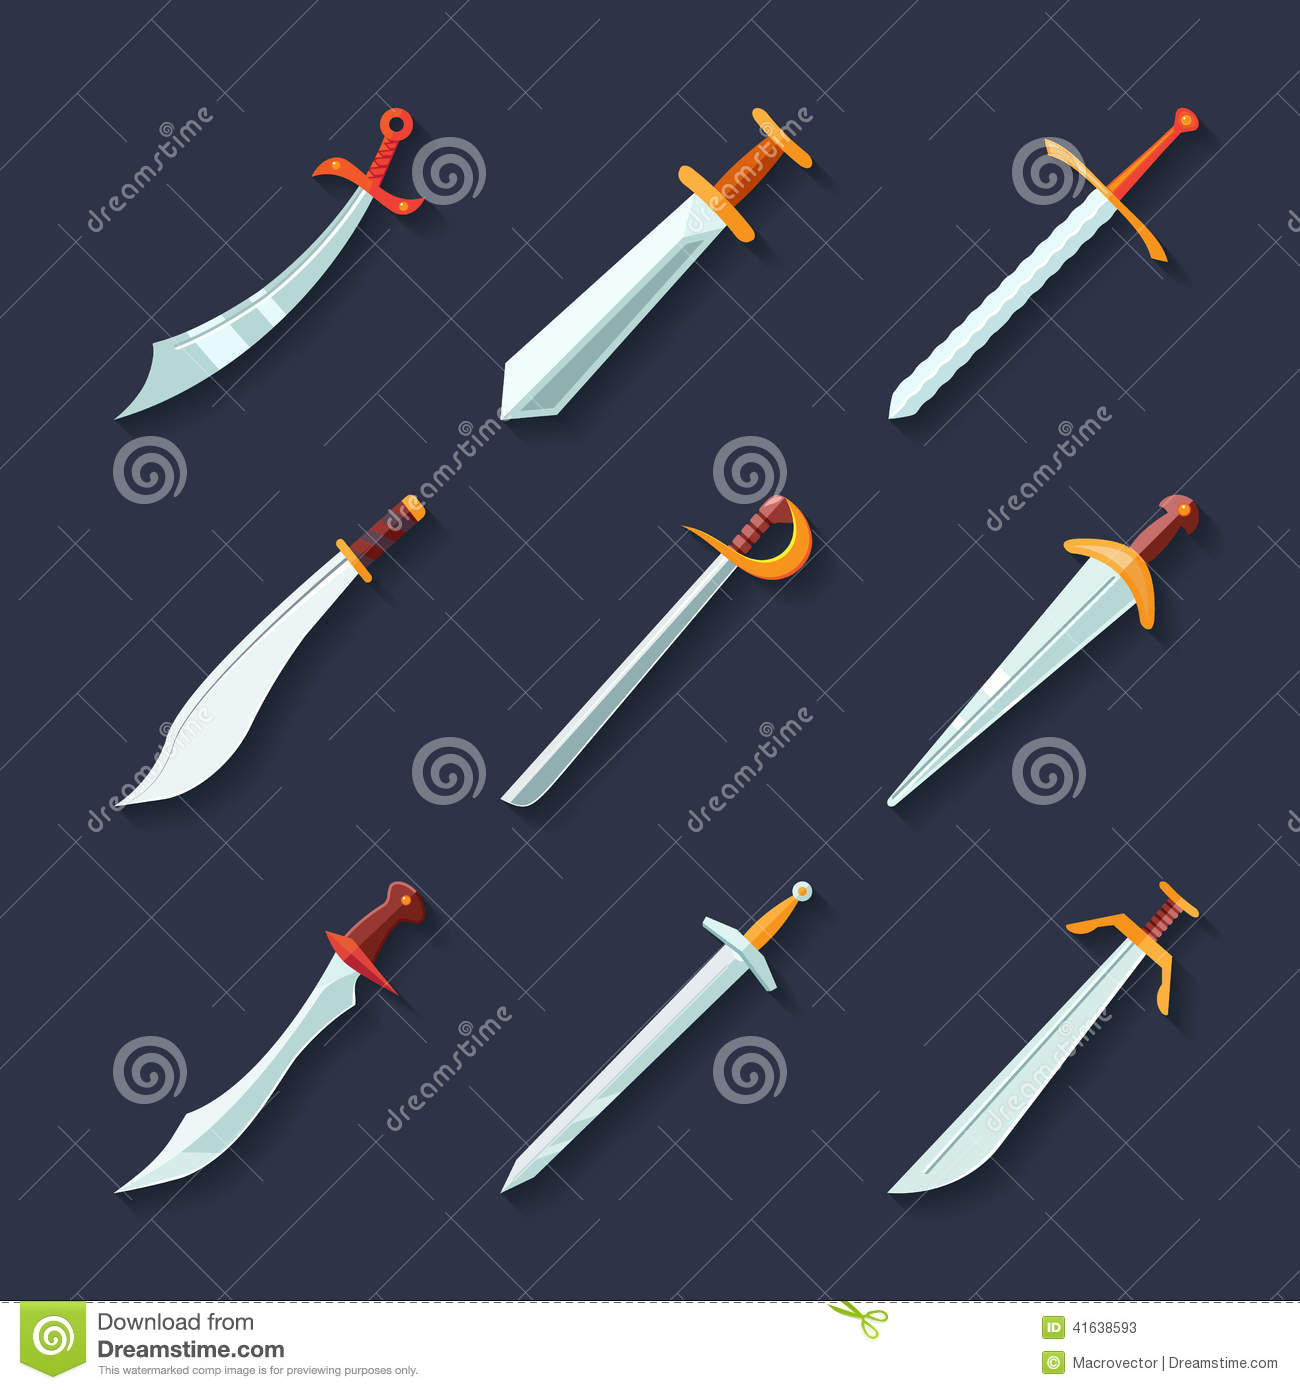 how to draw a samurai sword from its sheath